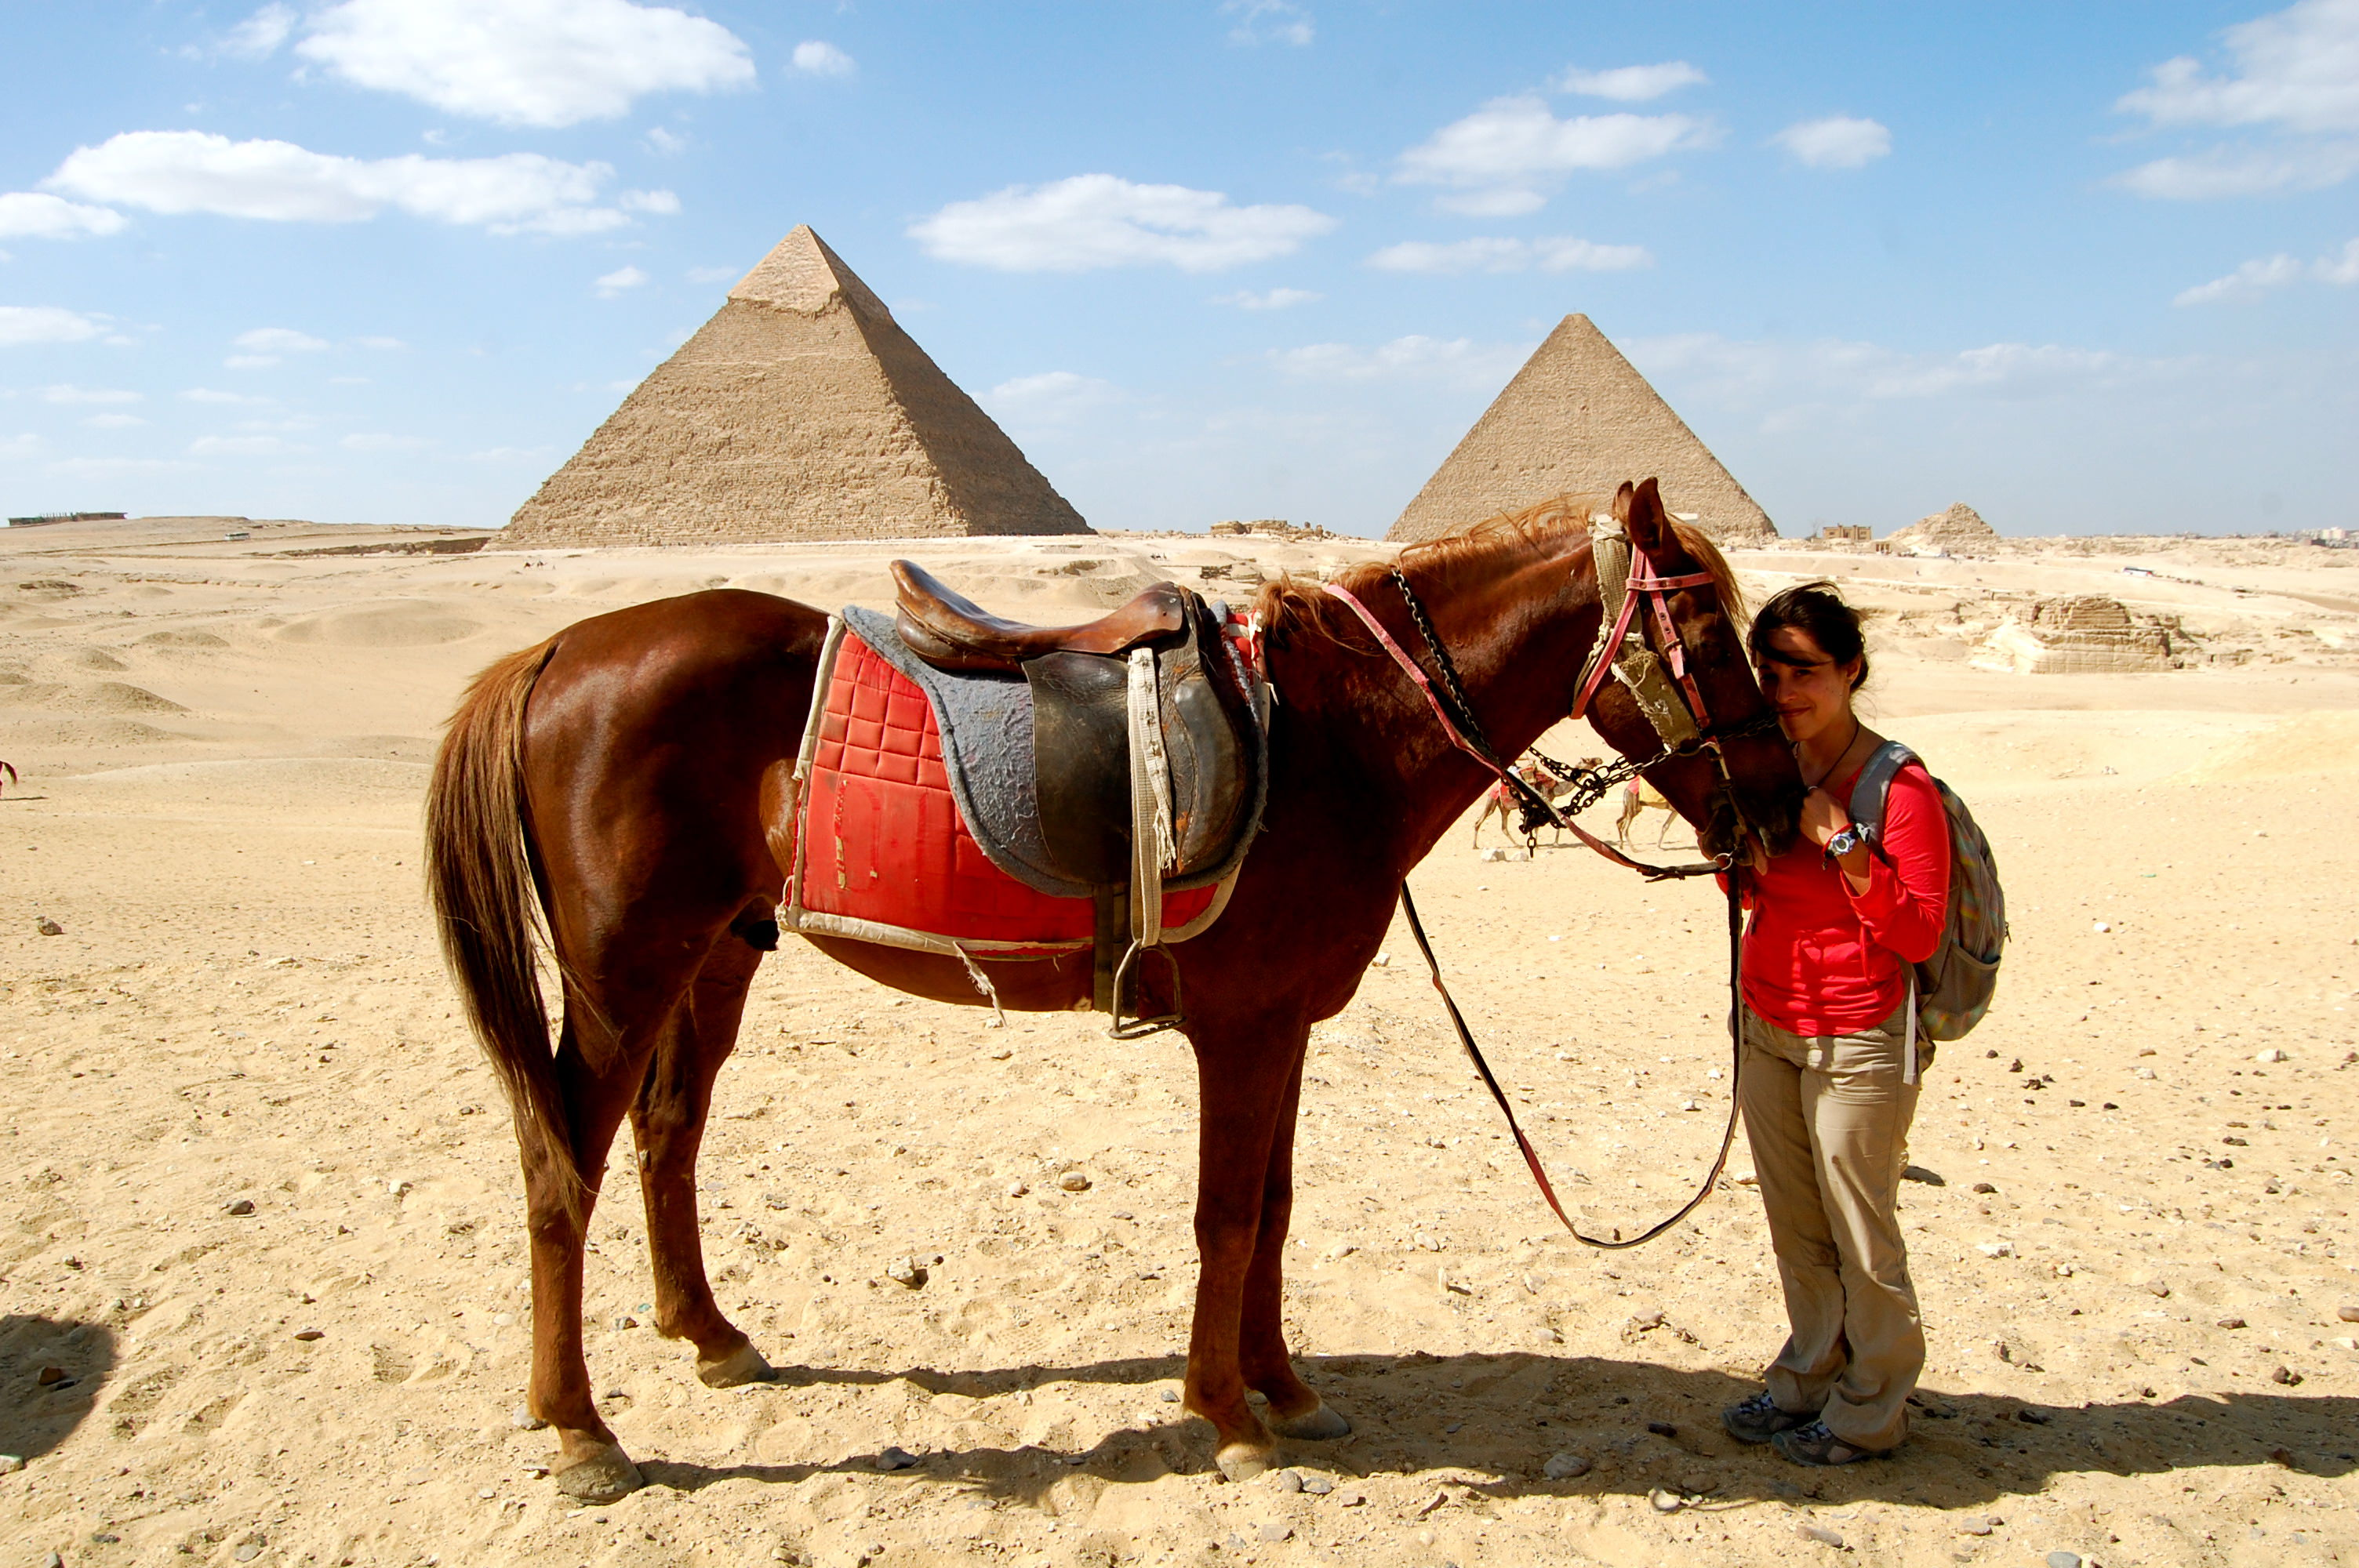 My horse and me at the Pyramids